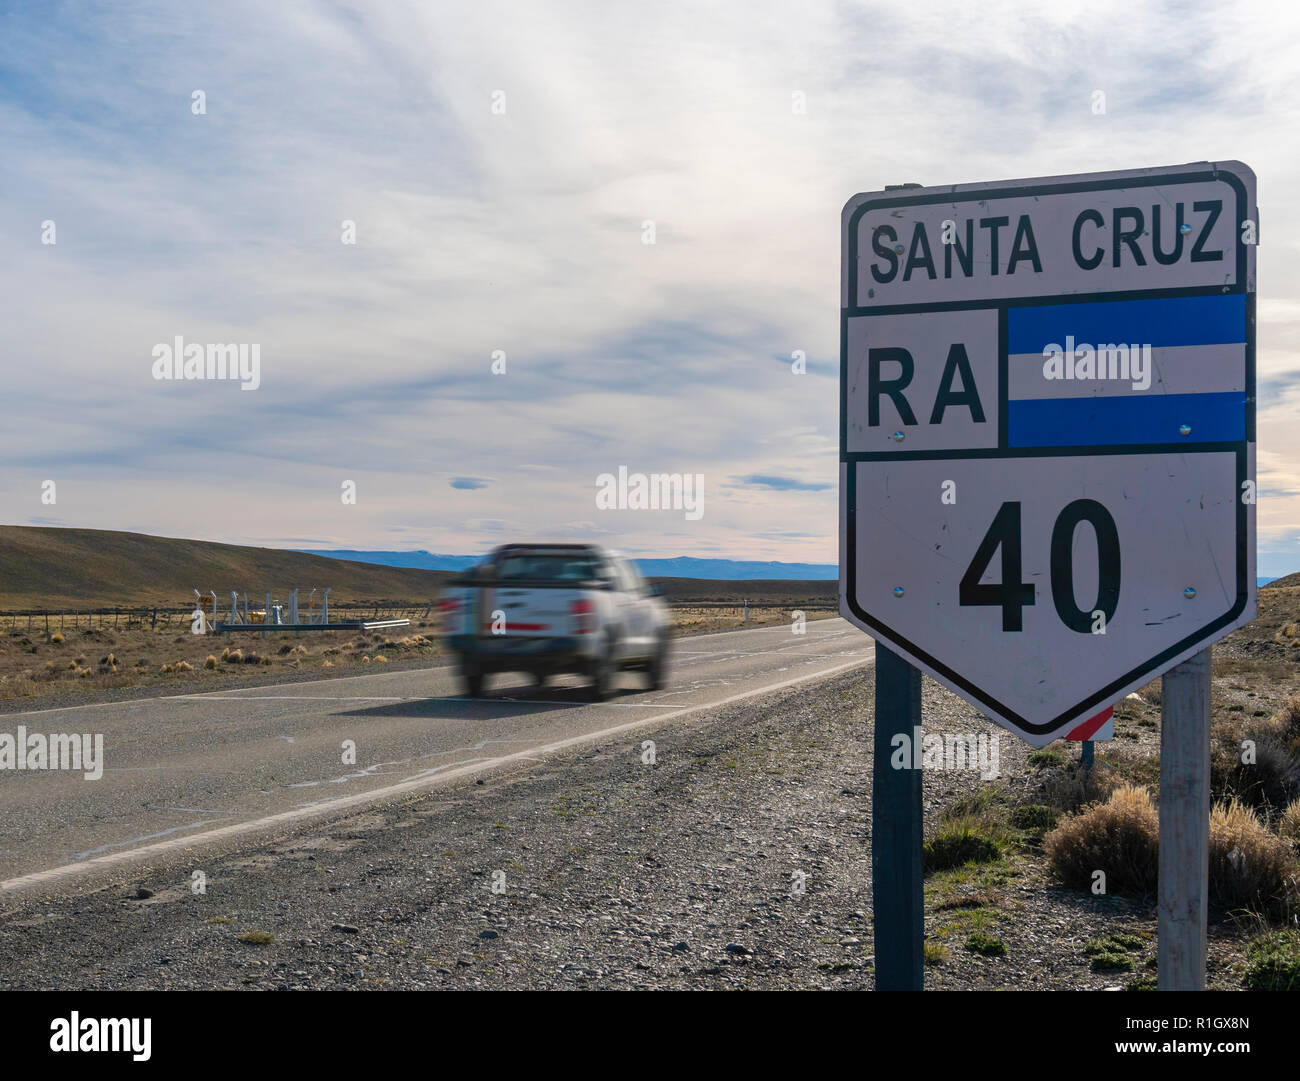 Car travelling on Route 40 in Argentina - Stock Image